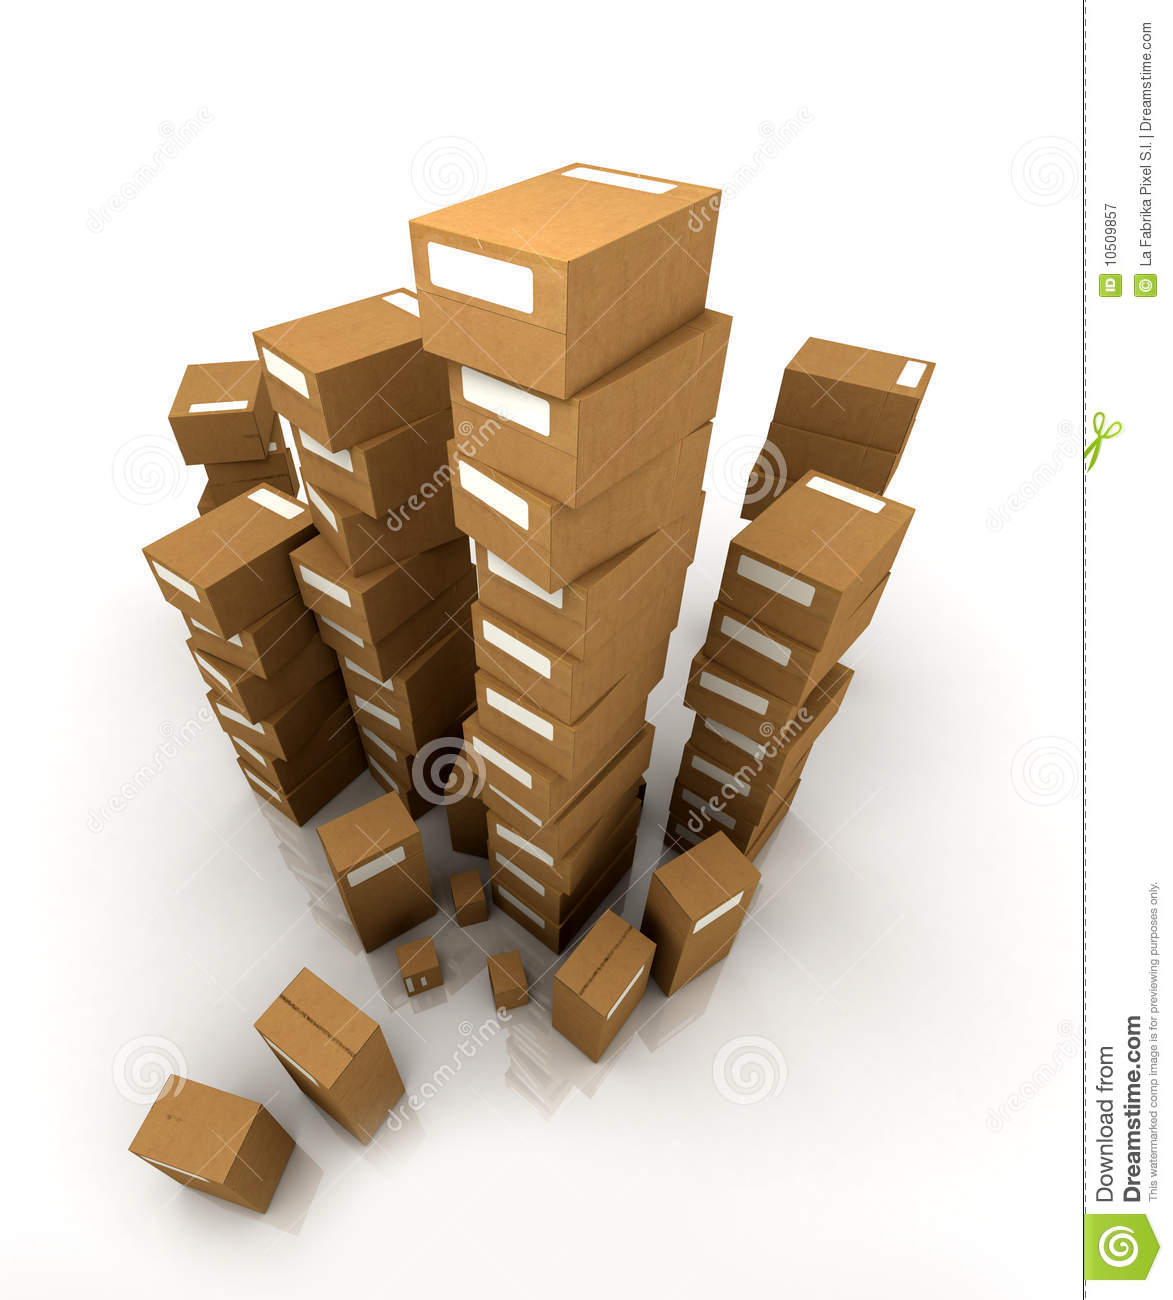 Huge pile of cardboard boxes royalty free stock